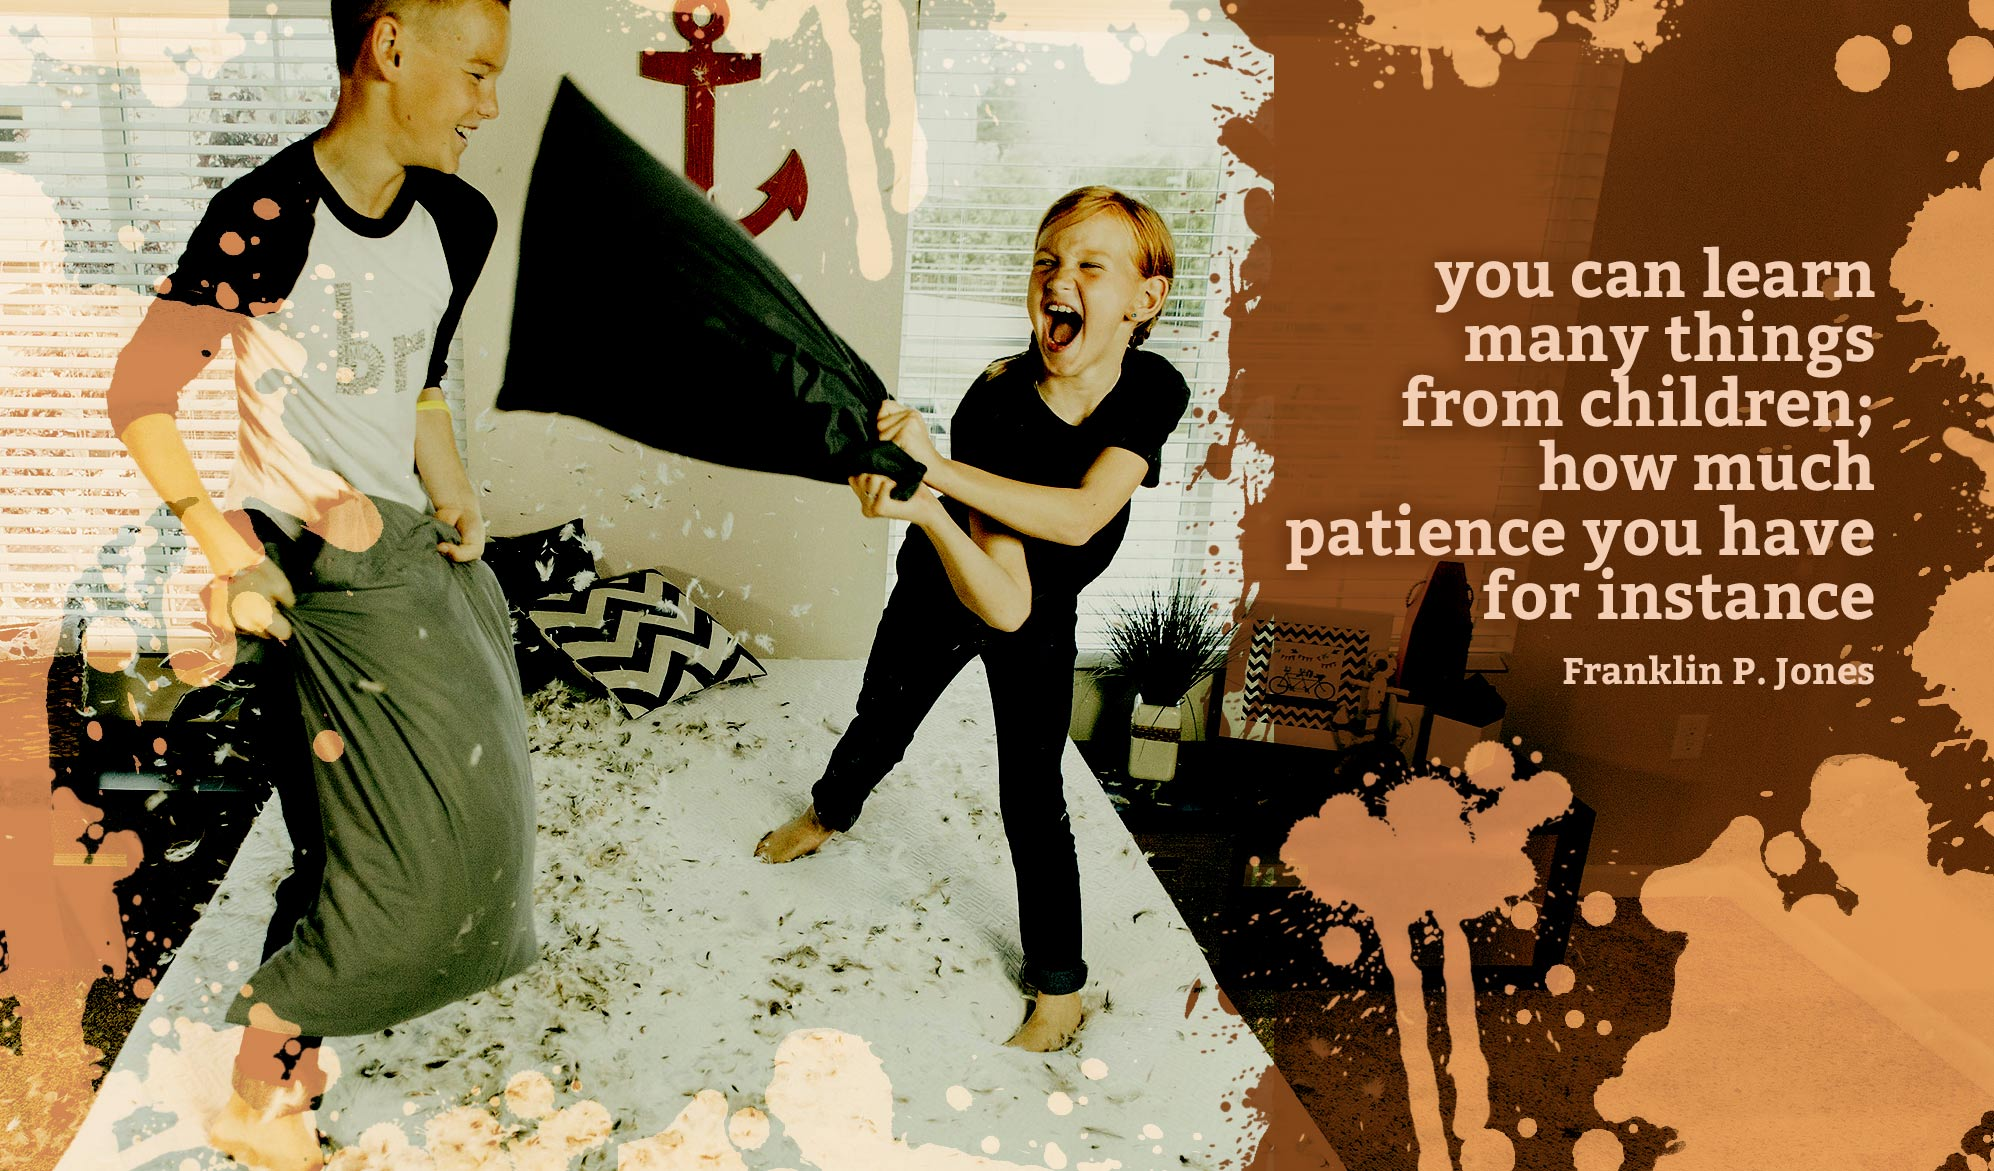 daily inspirational quote image: 2 kids, pillow fighting on a bed, with feathers everywhere